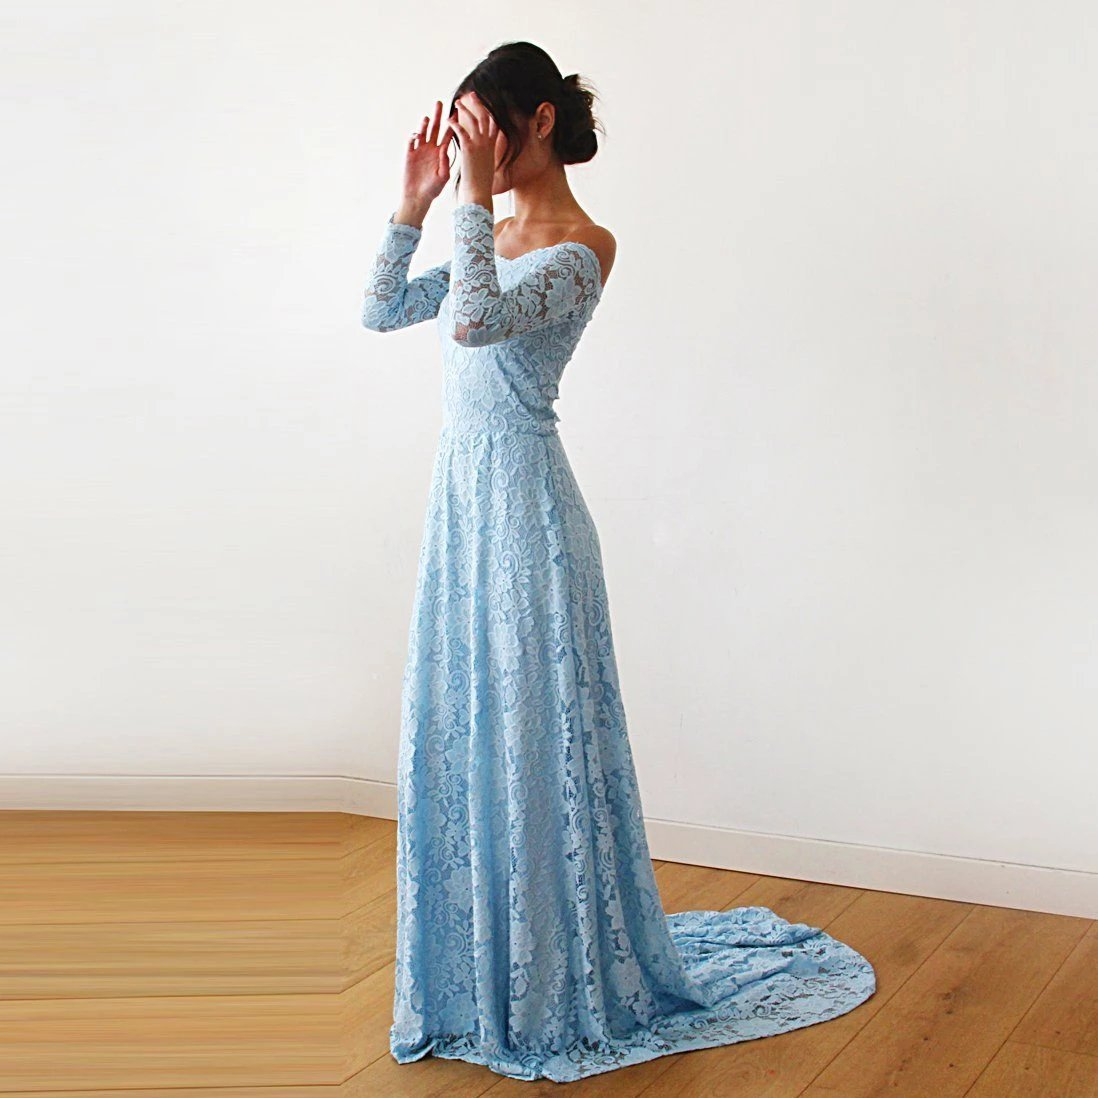 Light Blue Off-The-Shoulder Floral Lace Long Sleeve Gown With Train 1148 - Blushfashion